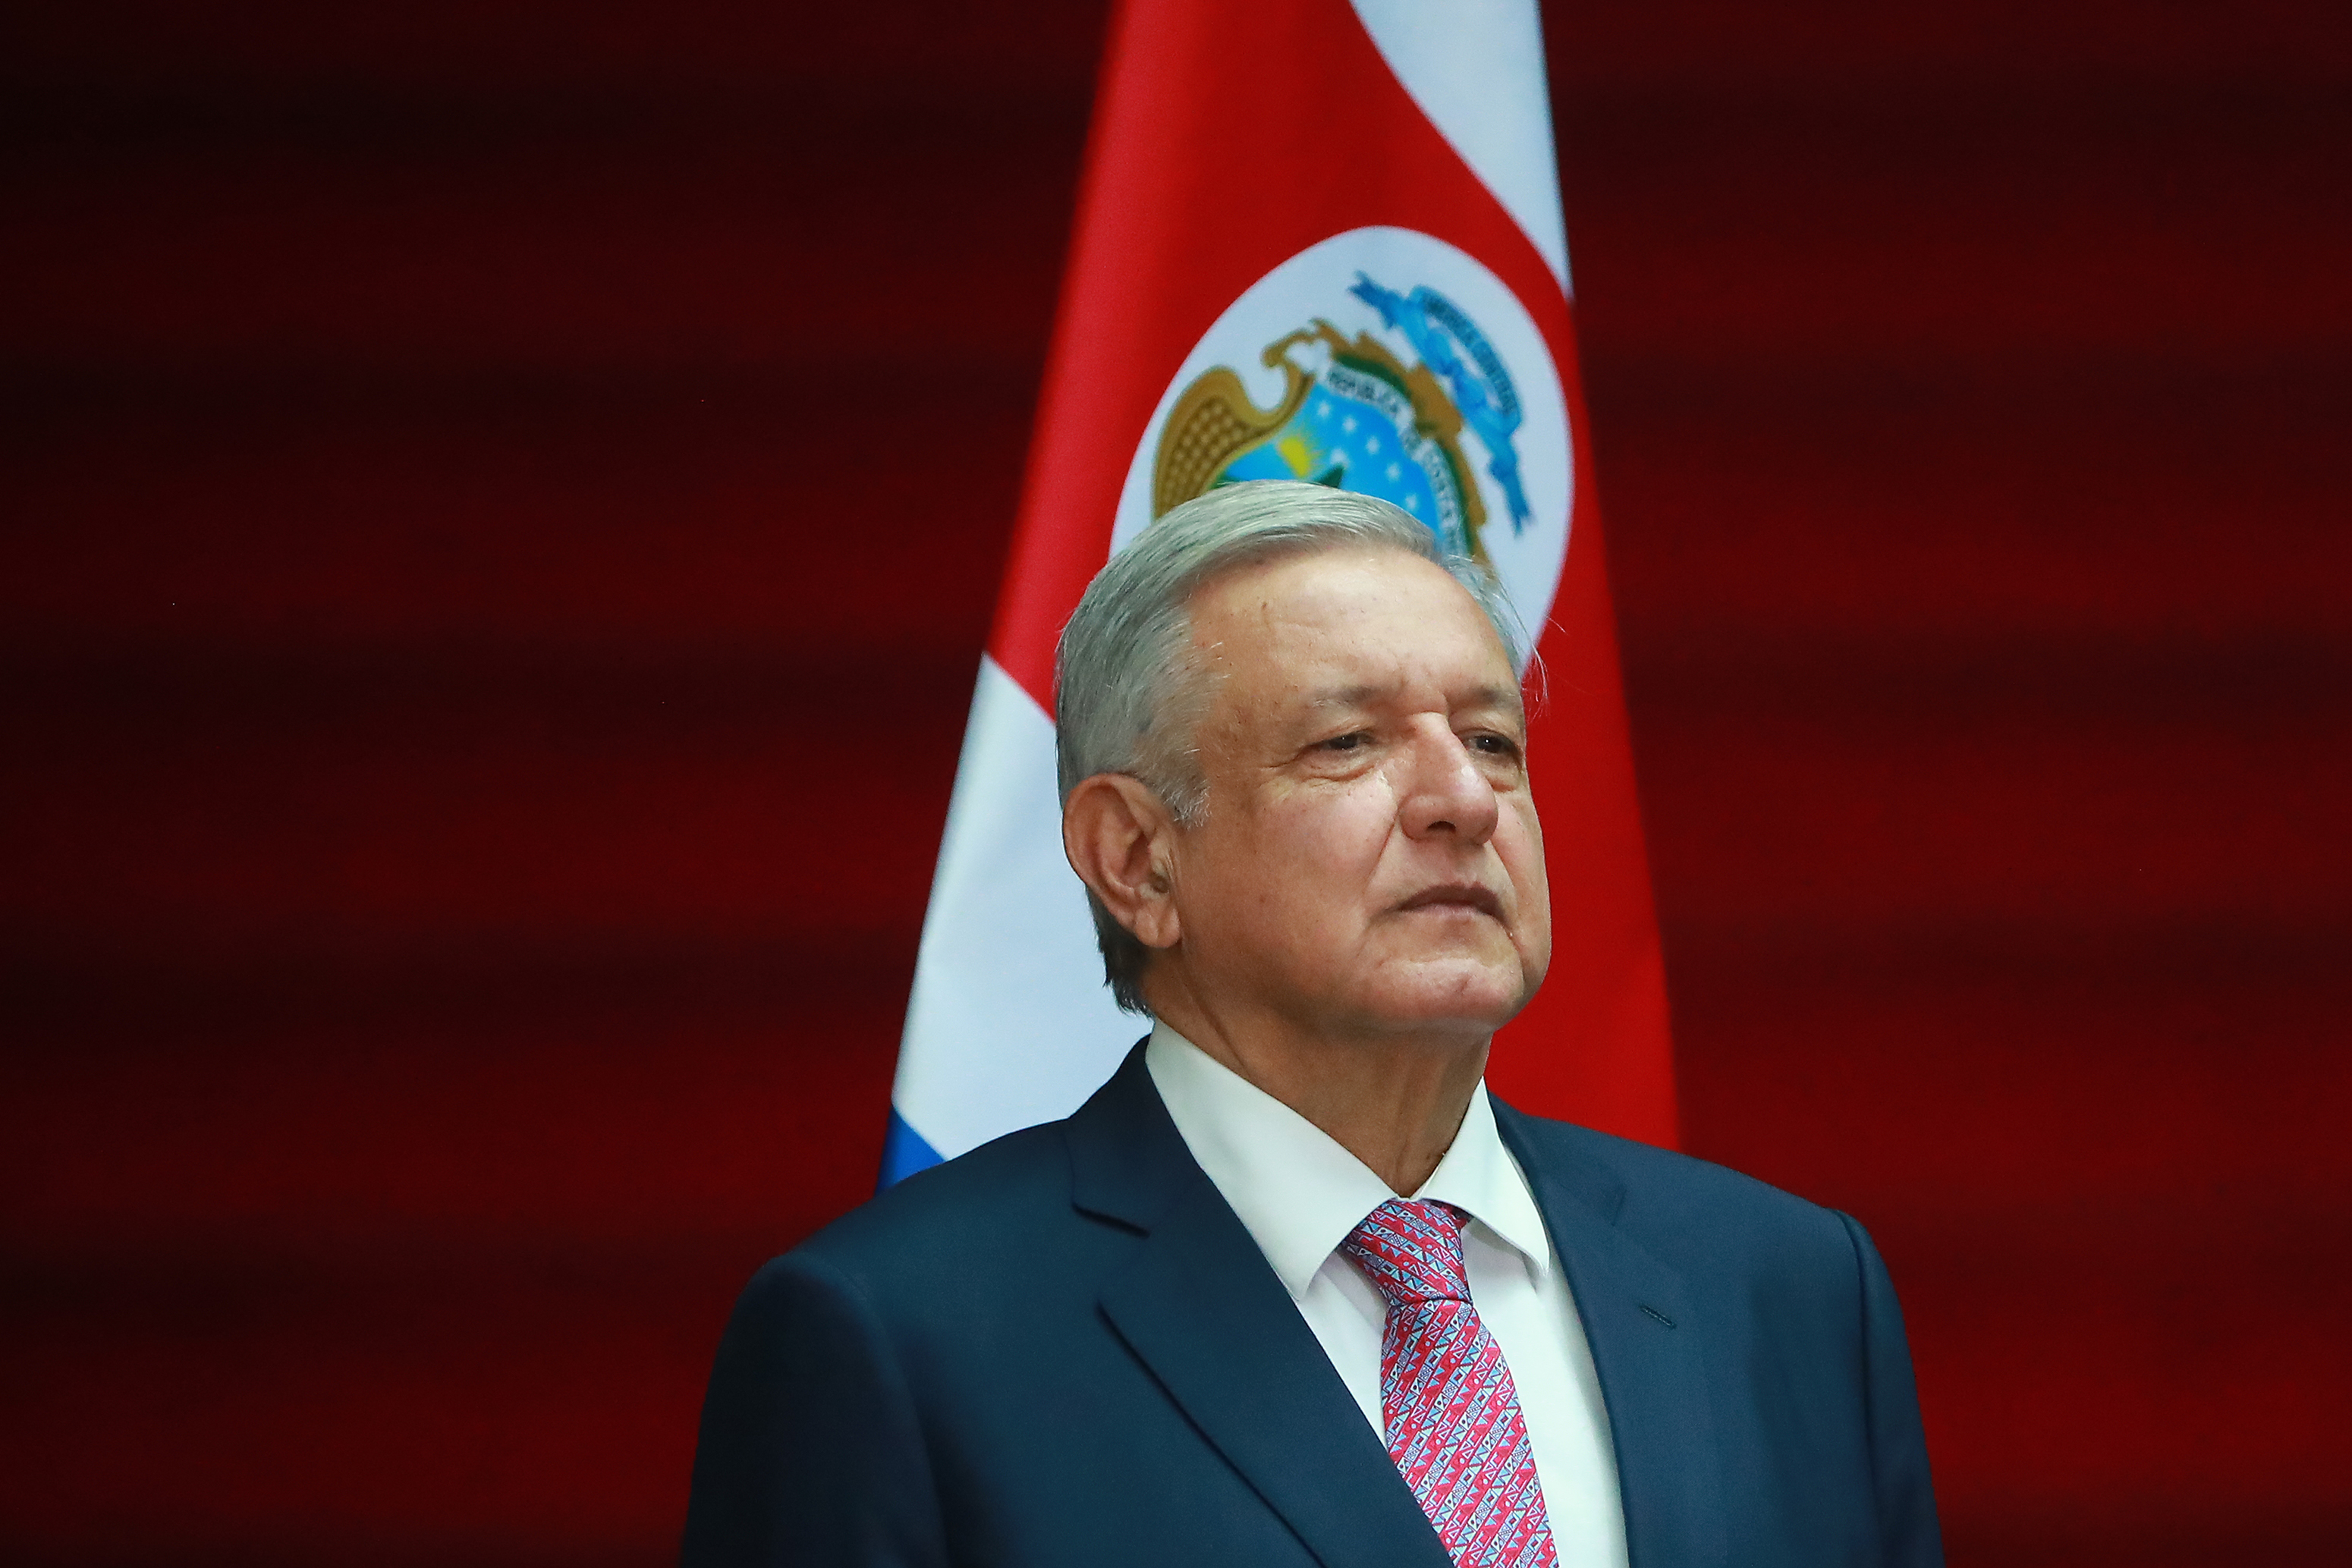 Andres Manuel Lopez Obrador, President of Mexico, poses during a state visit to Palacio Nacional on October 21, 2019.